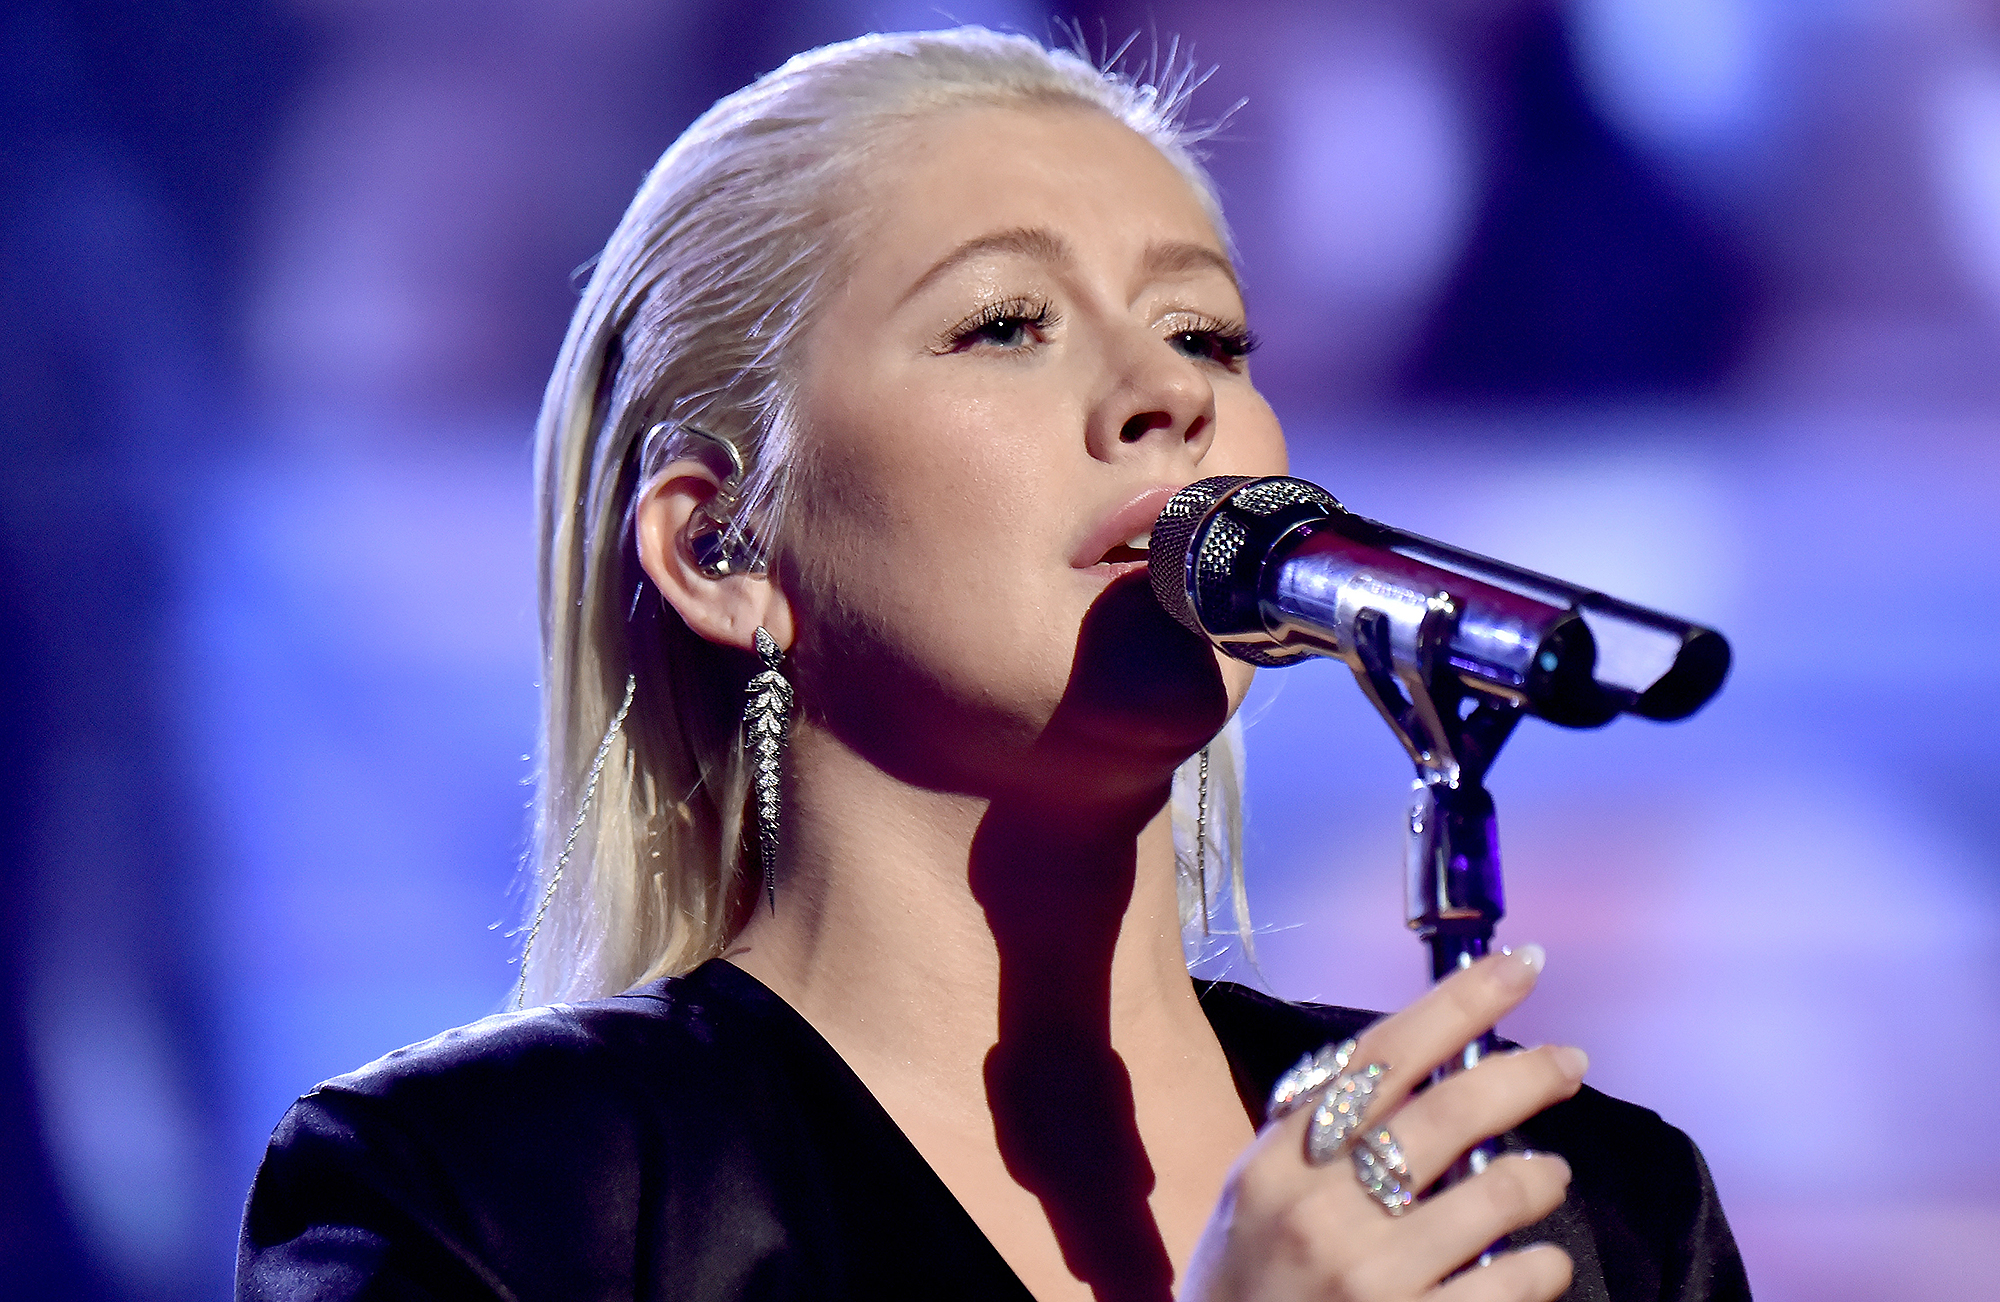 Christina Aguilera's Whitney Houston Tribute Has the Internet Divided